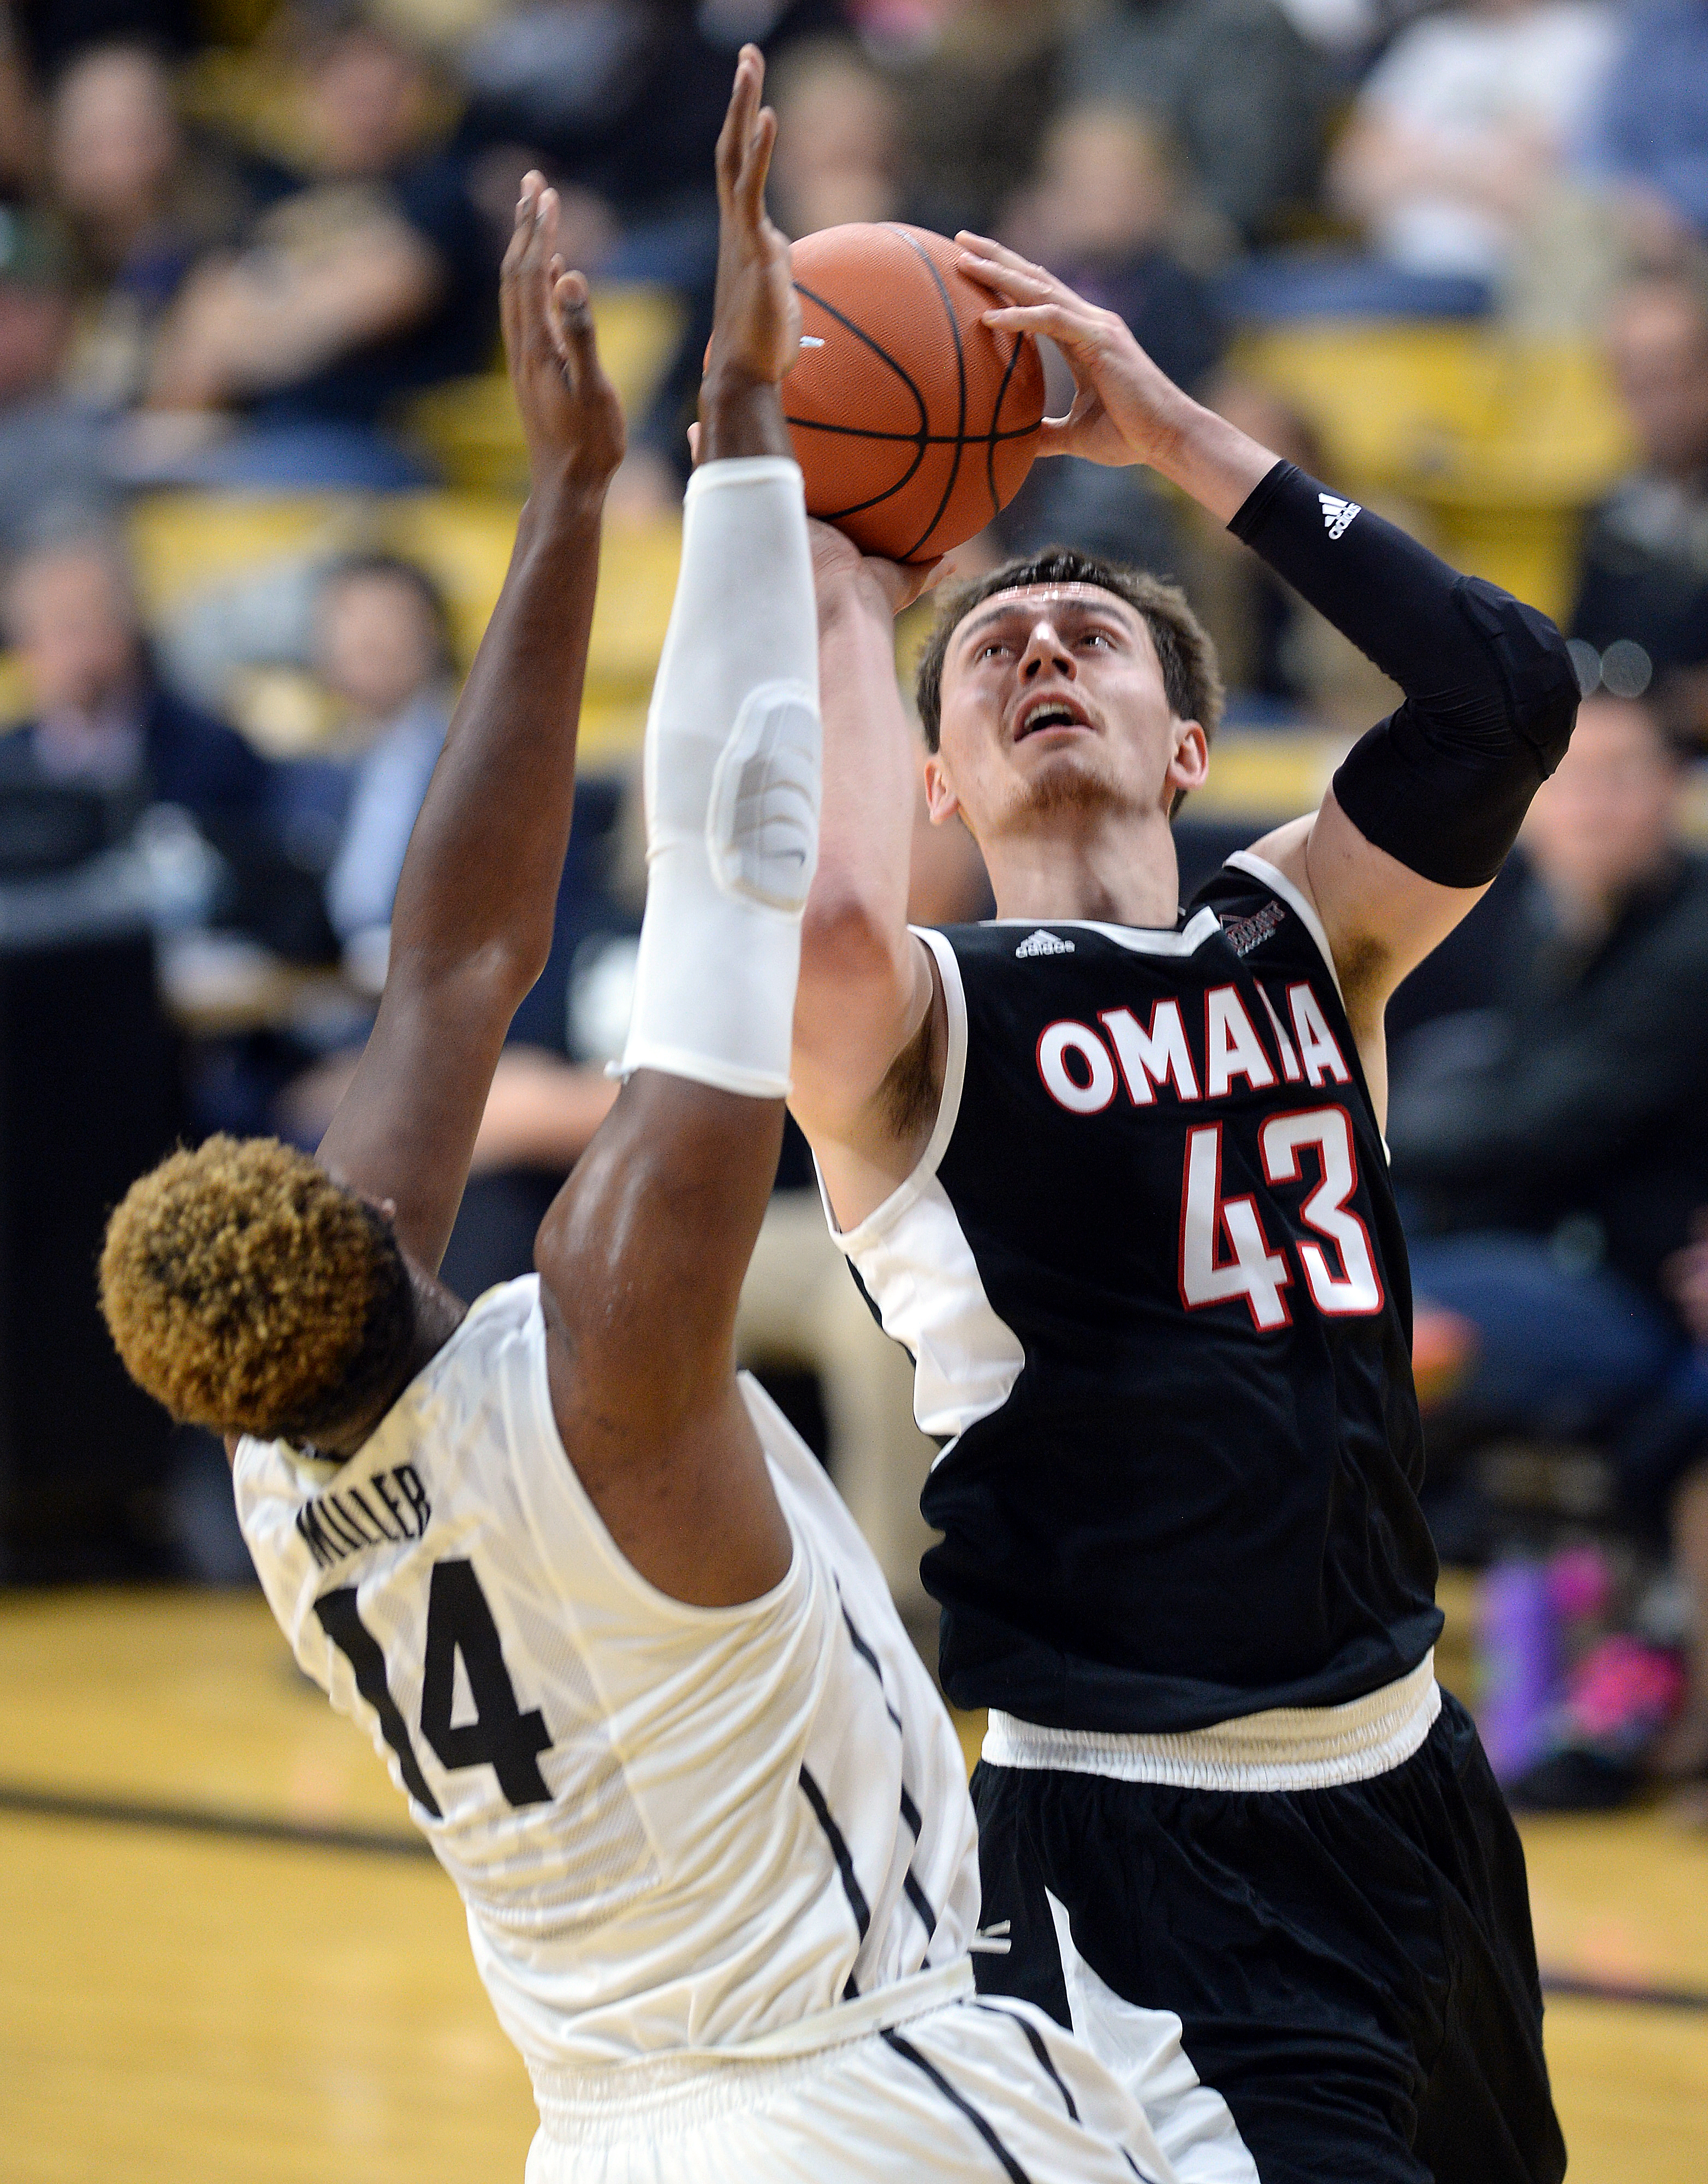 Nebraska-Omaha's Jake White shoots over Colorado's Tory Miller during the first half of an NCAA college basketball game Sunday, Nov. 22, 2015, in Boulder, Colo. (Cliff Grassmick/The Daily Camera via AP)